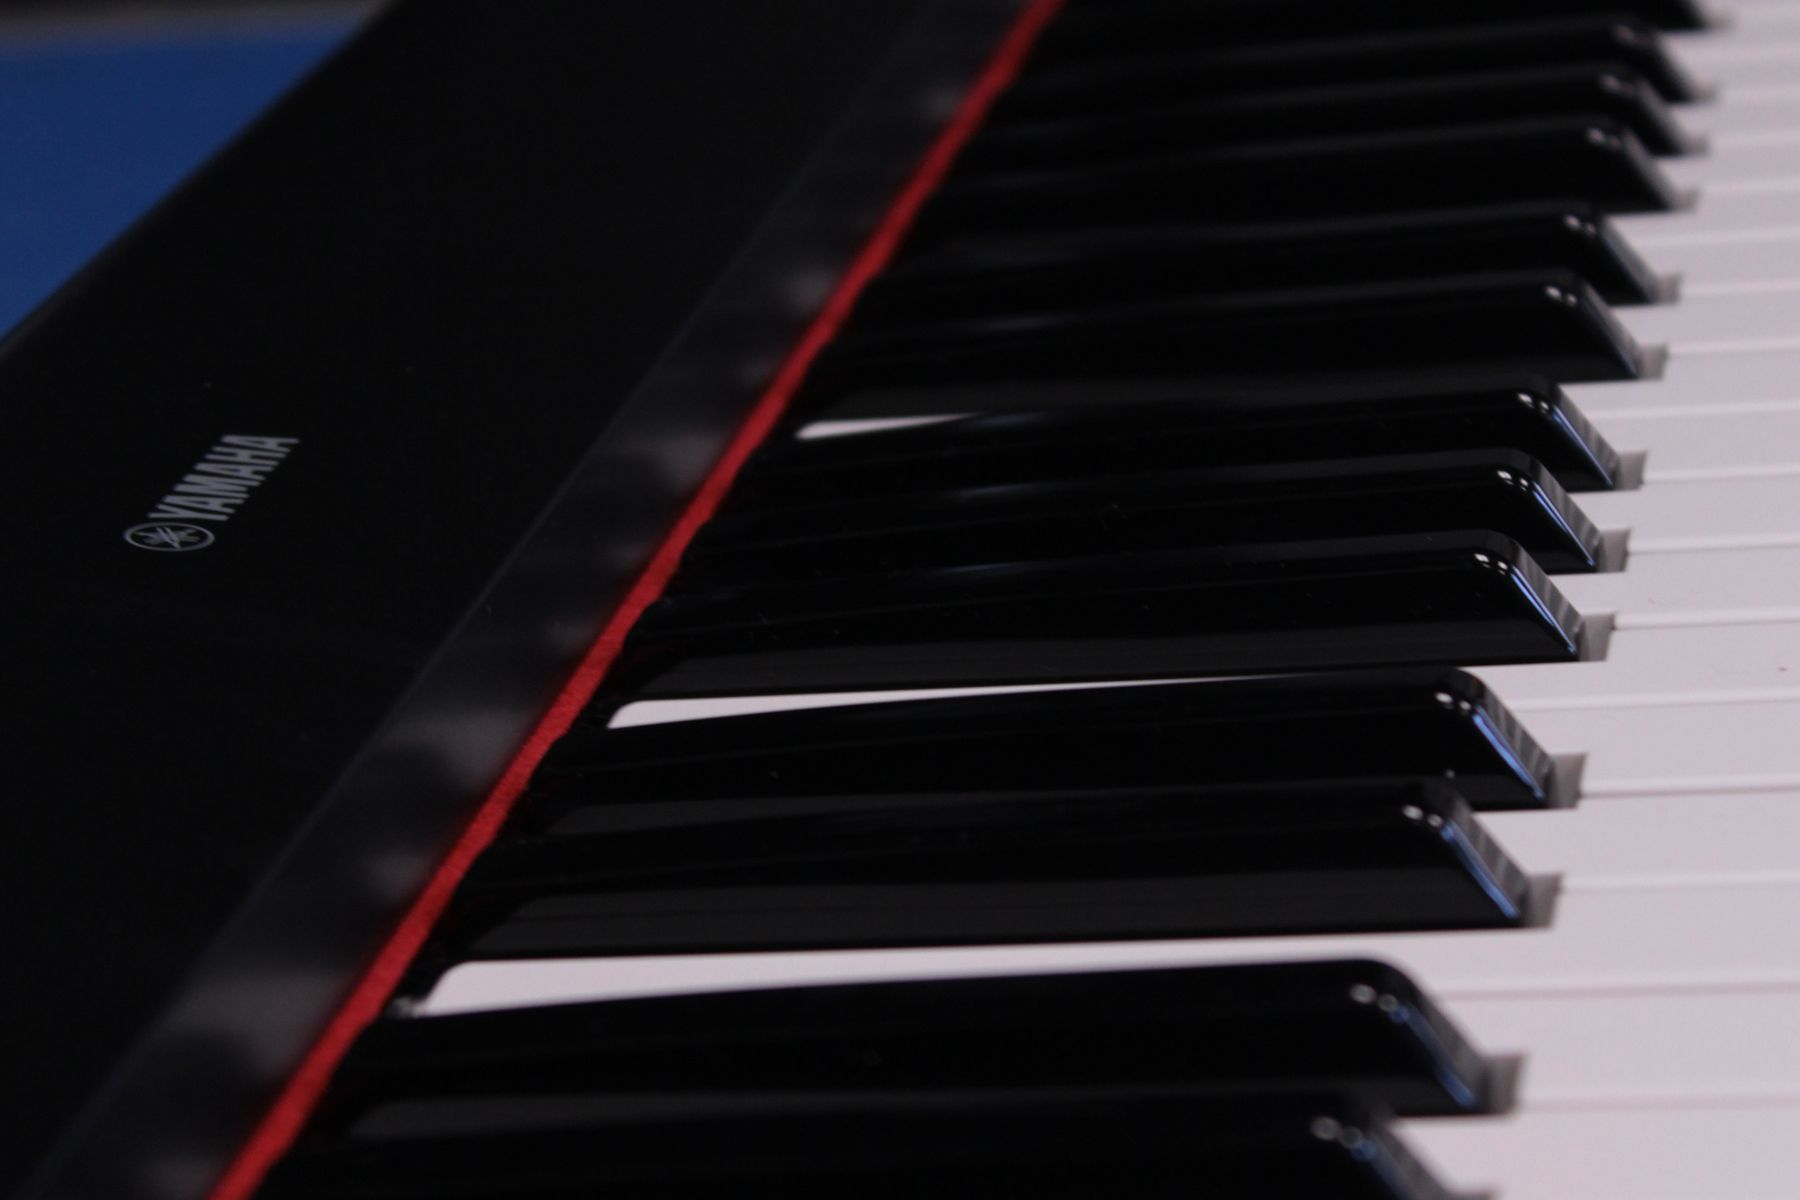 Close up of a Yamaha keyboard